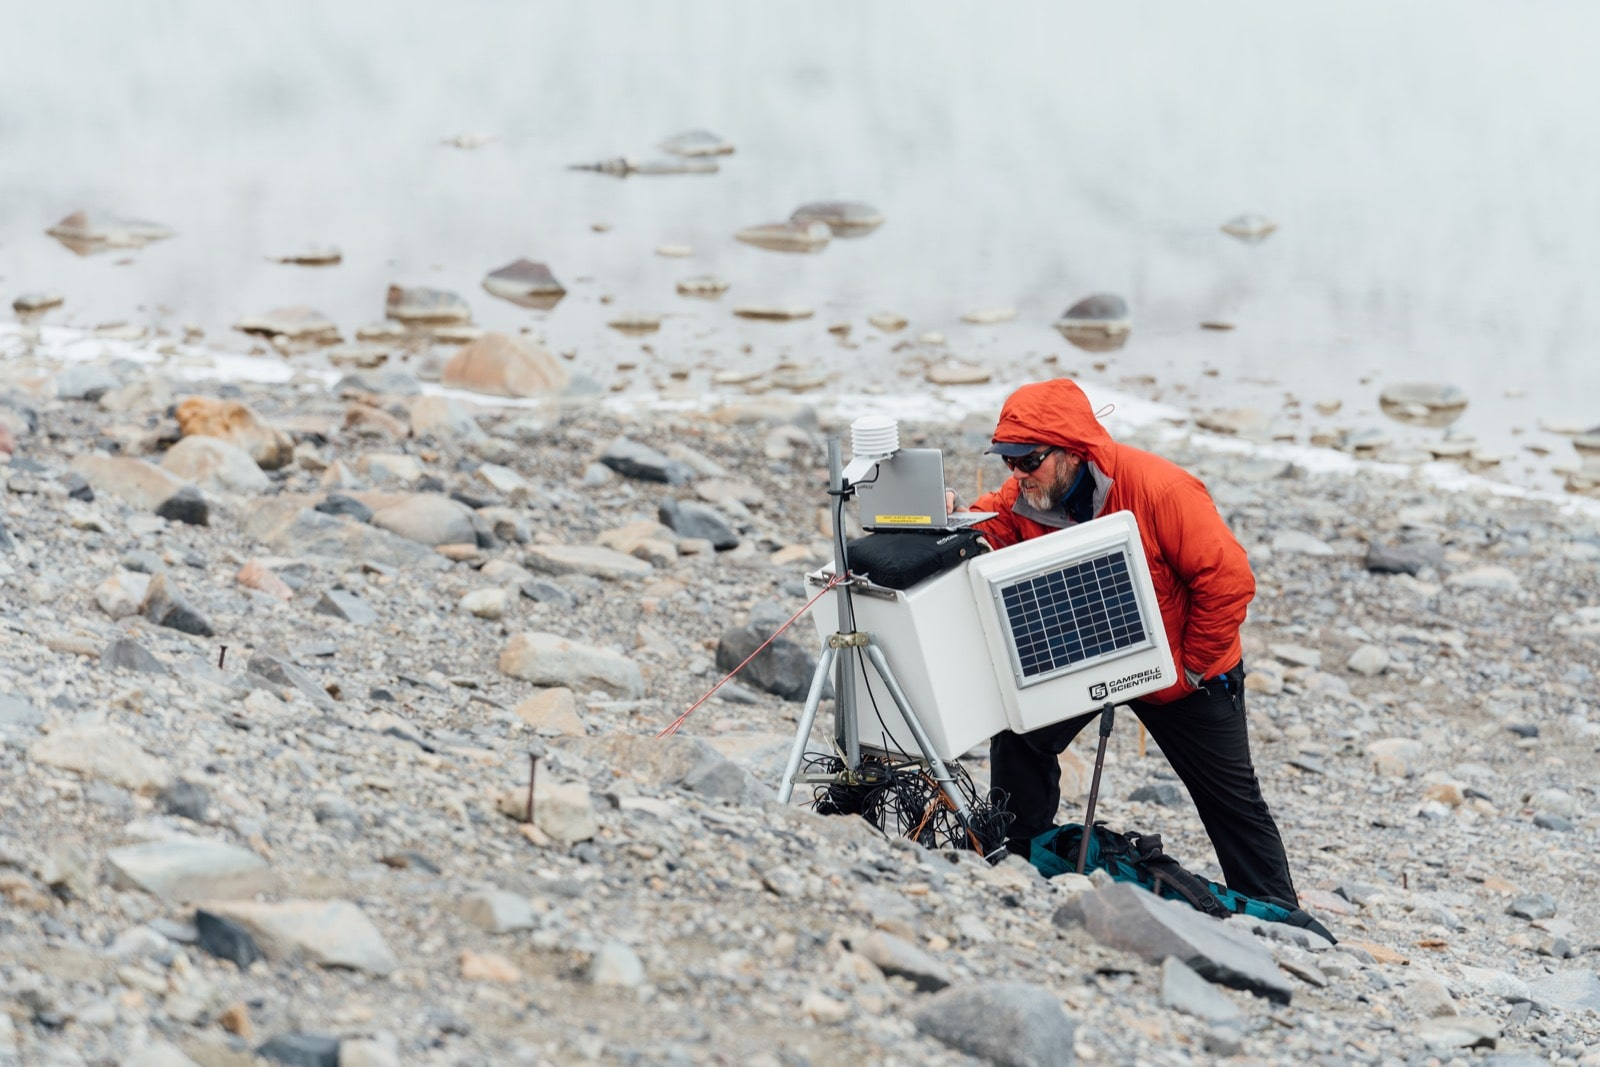 Mike Gooseff with his light red overcoat hood up over his head, working a box of lab equipment. He is standing in front of a bank of water on a rocky shore.